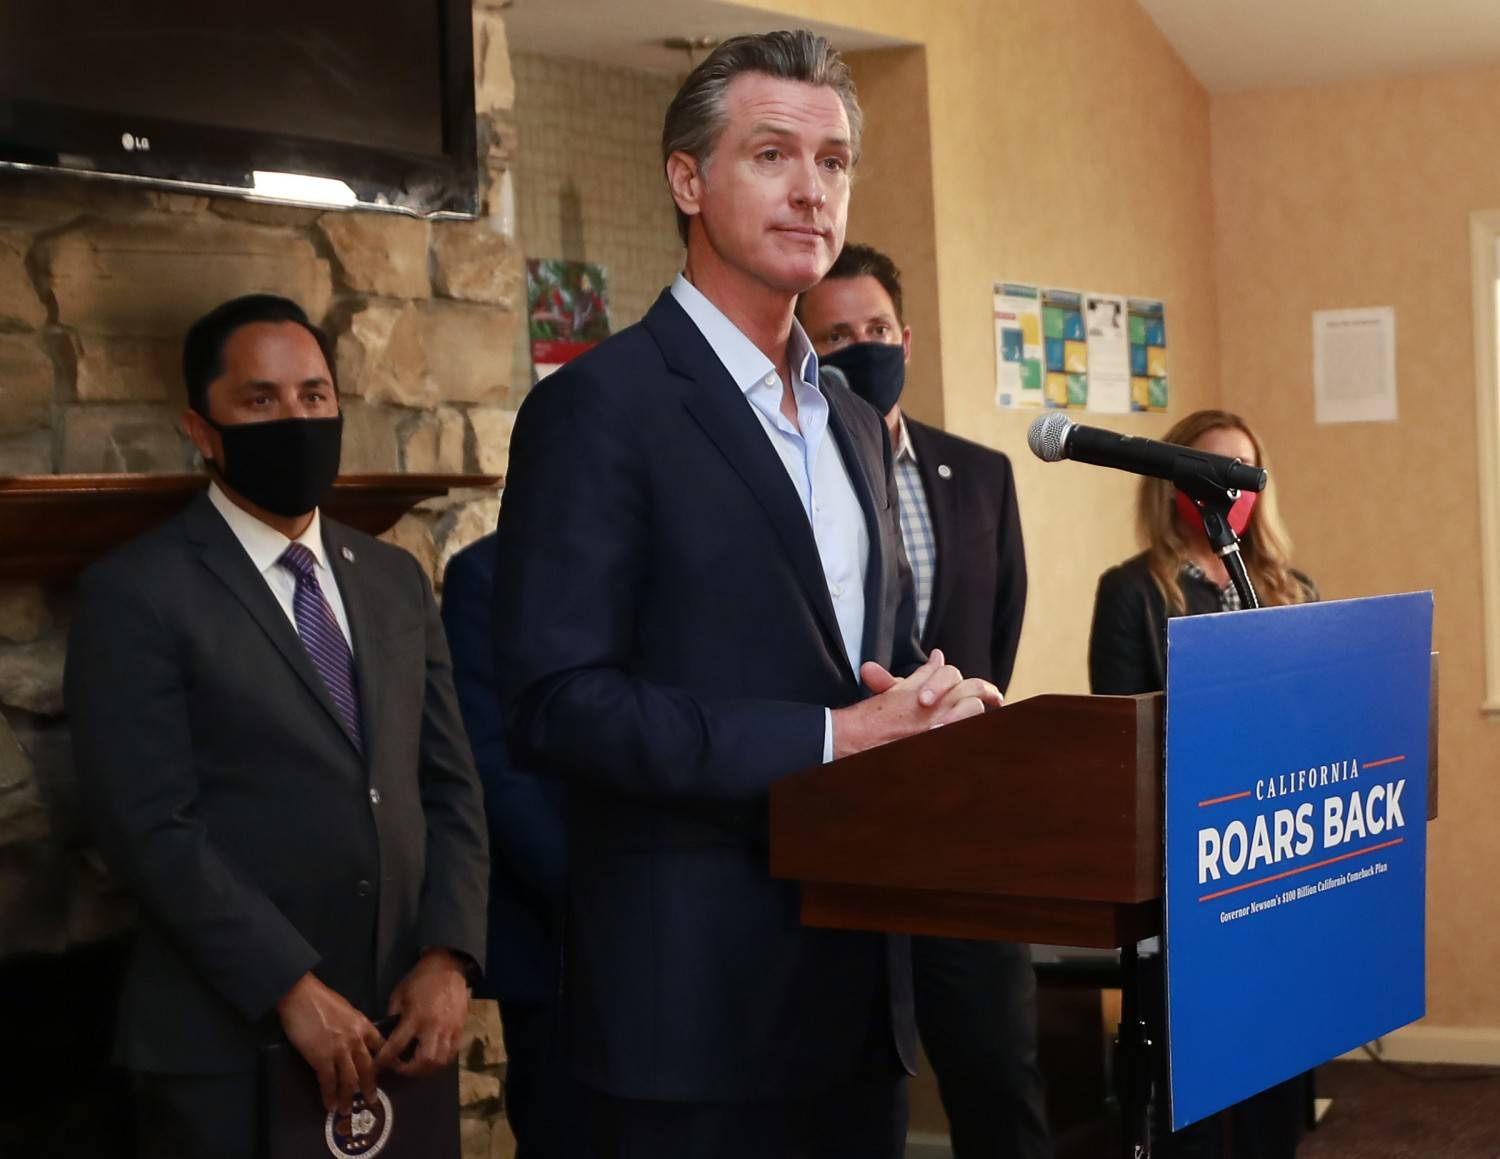 Gov. Gavin Newsom's revised 2021-22 budget has limited information about the Unemployment Insurance Fund, which comprises debt the state is projected to owe to the federal government.<ins> (K.C. Alfred/The San Diego Union-Tribune/TNS)</ins> Gov. Gavin Newsom's revised 2021-22 budget has limited information about the Unemployment Insurance Fund, which comprises debt the state is projected to owe to the federal government. (K.C. Alfred/The San Diego Union-Tribune/TNS)